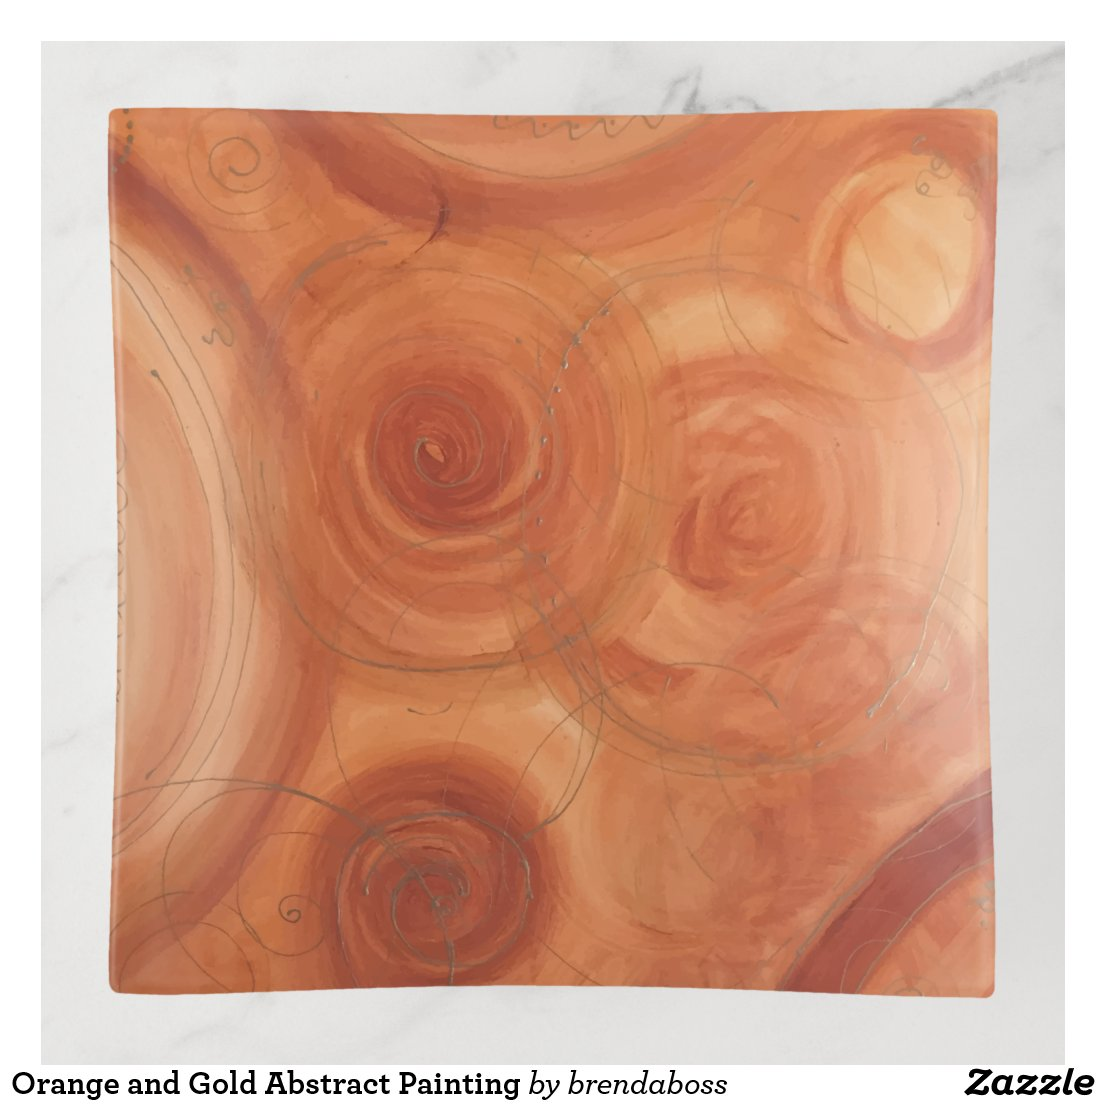 Orange and Gold Abstract Painting